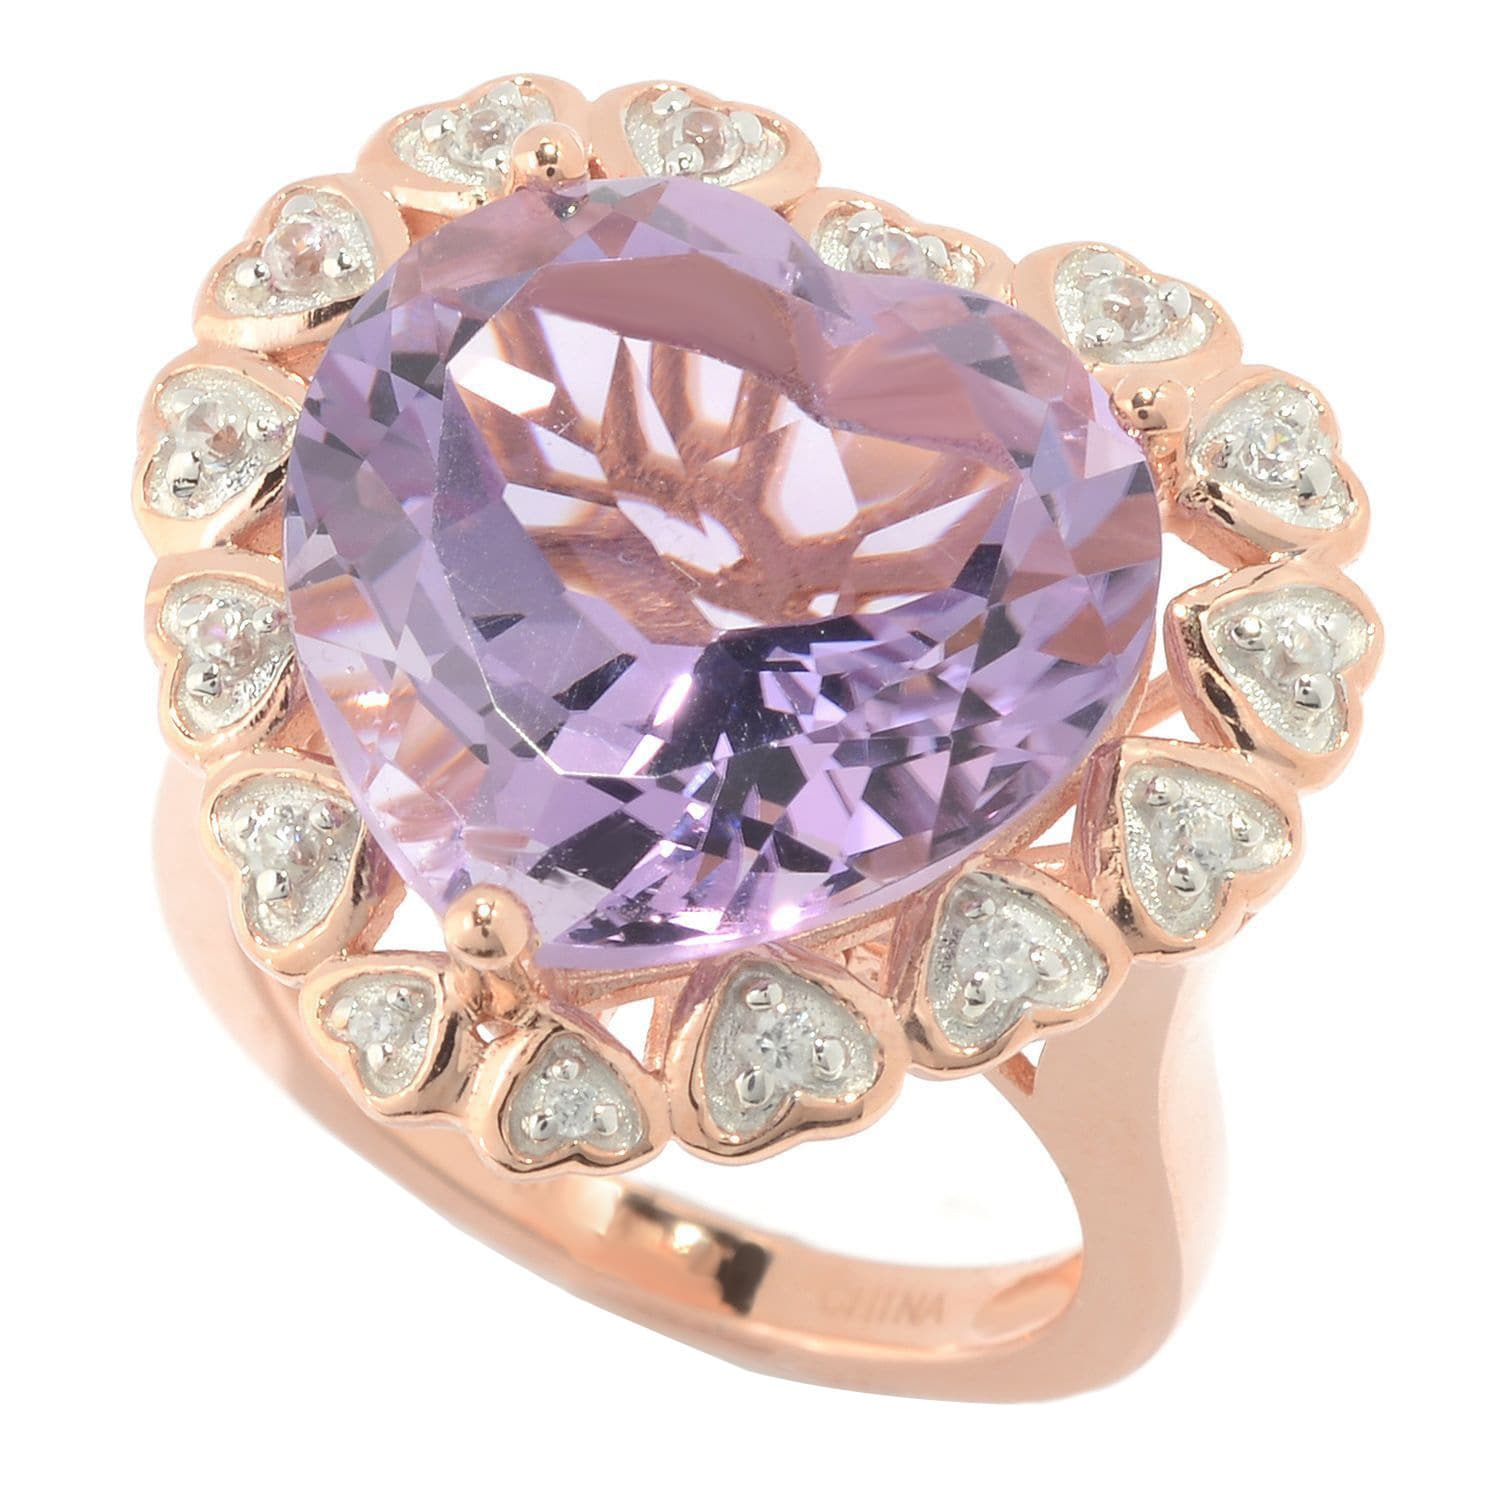 18k Rose Gold over Sterling Silver Amethyst and White Zir...